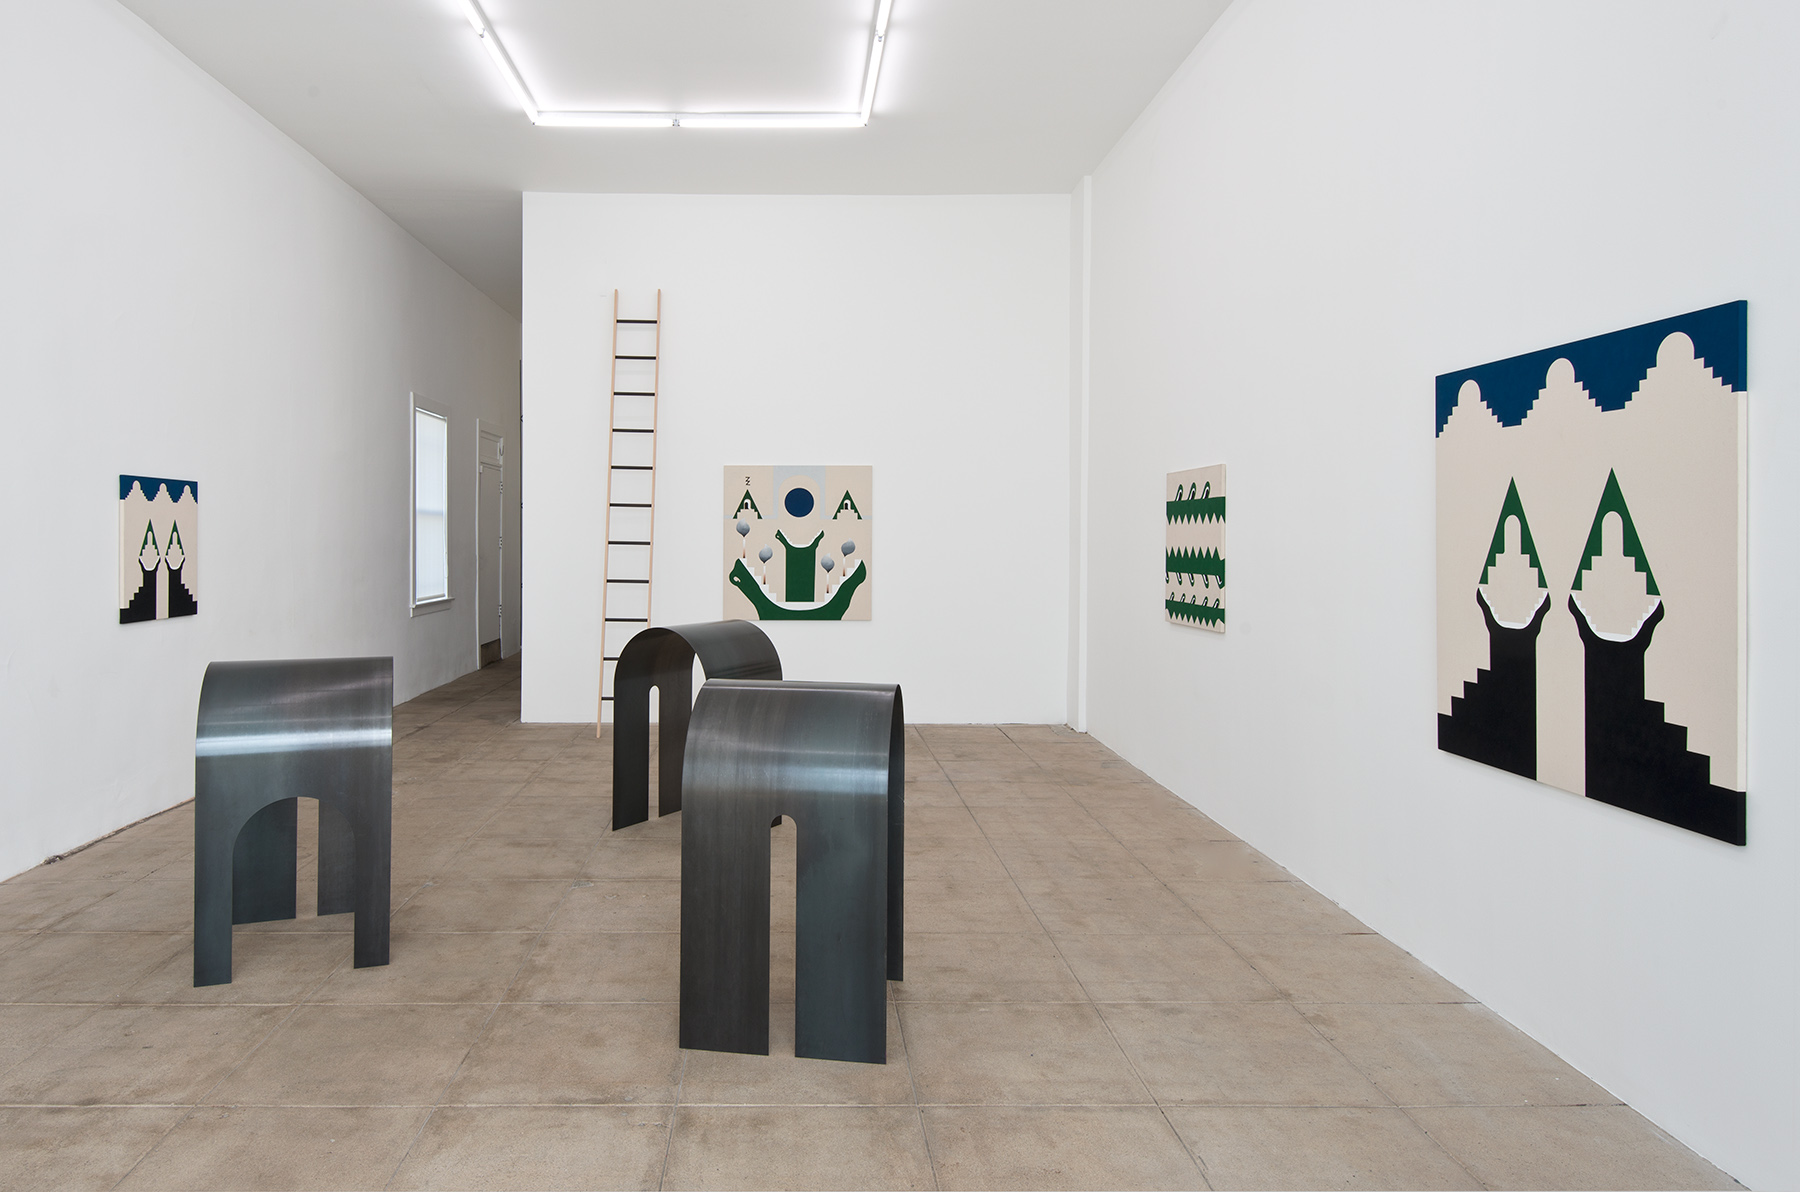 Installation view, Lies Inside at Overduin & Co., New York, 2014. Courtesy of the artist and Overduin & Co.